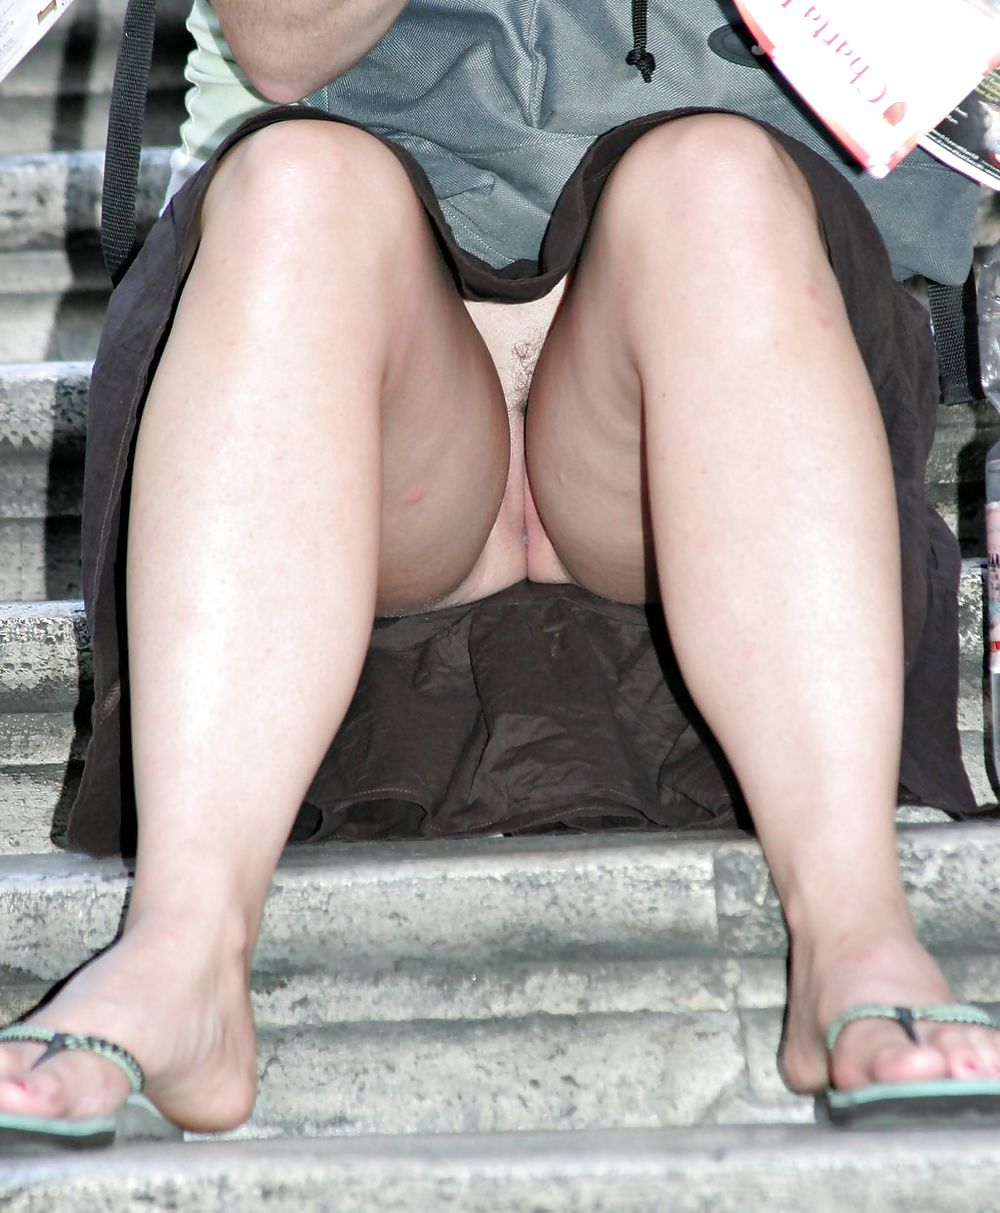 Free amateur upskirt panty galleries, pinay lady boys fuck gurls pic